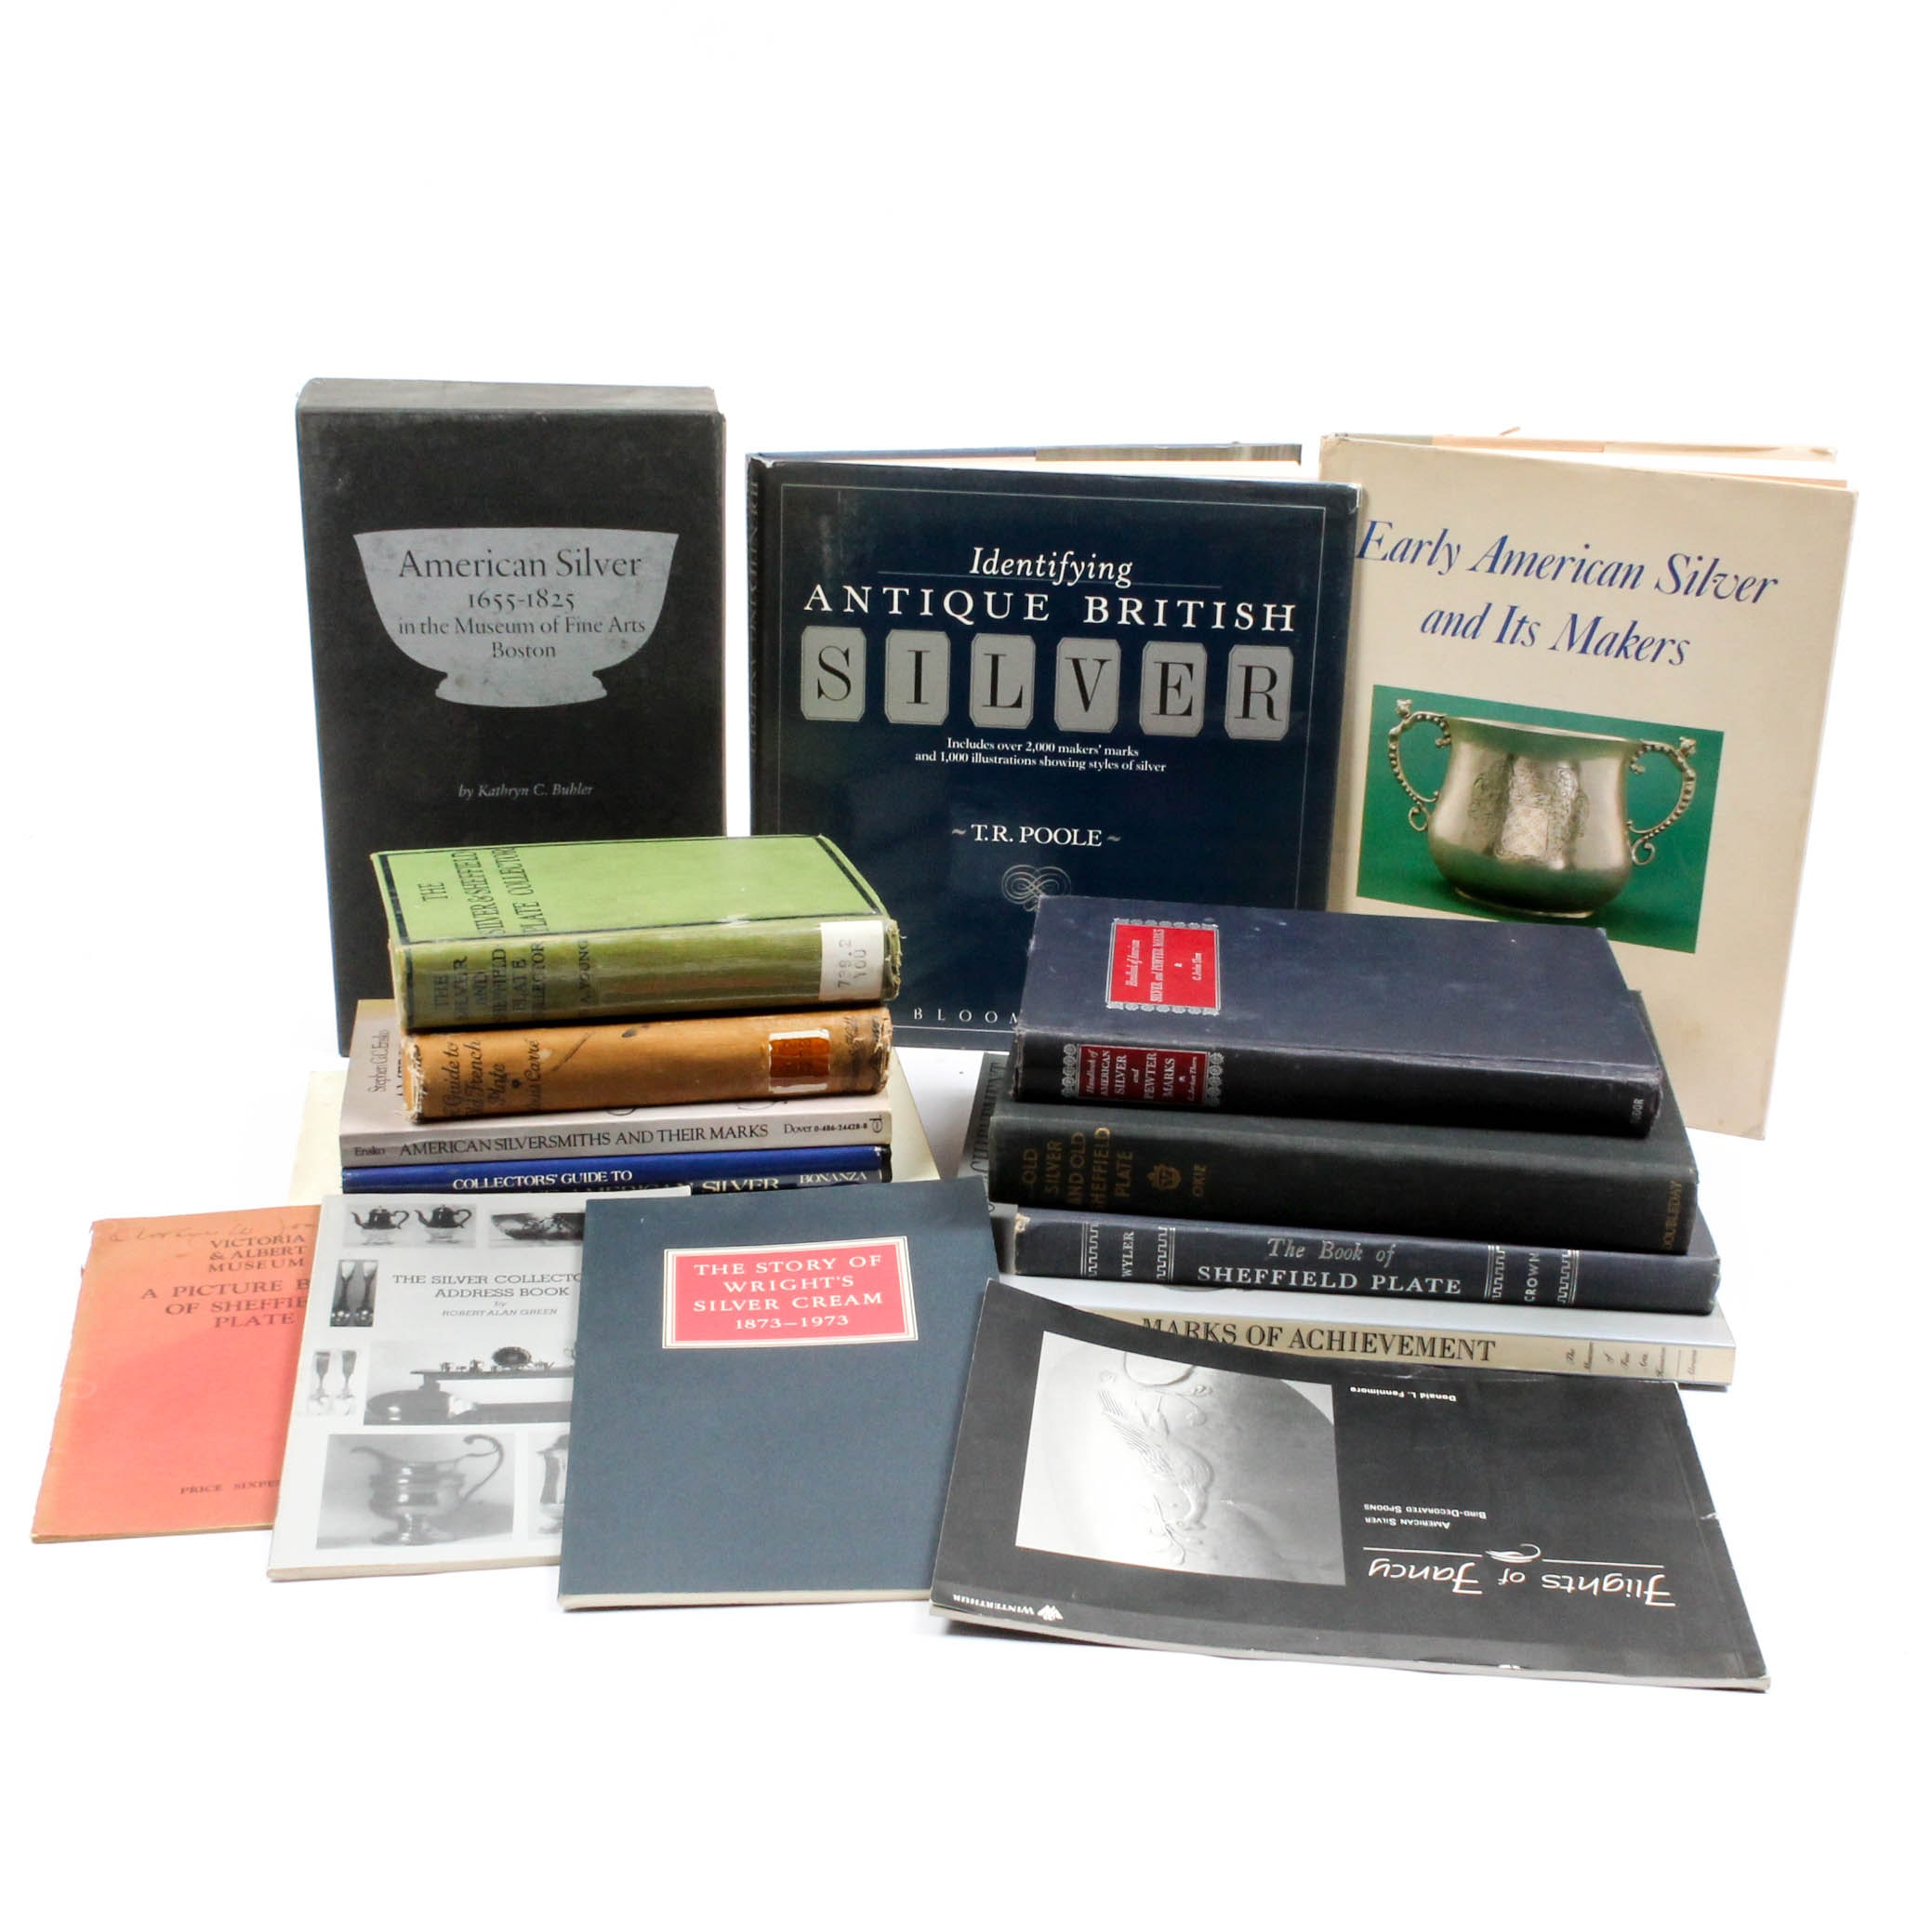 Vintage American and European Silver Reference Books